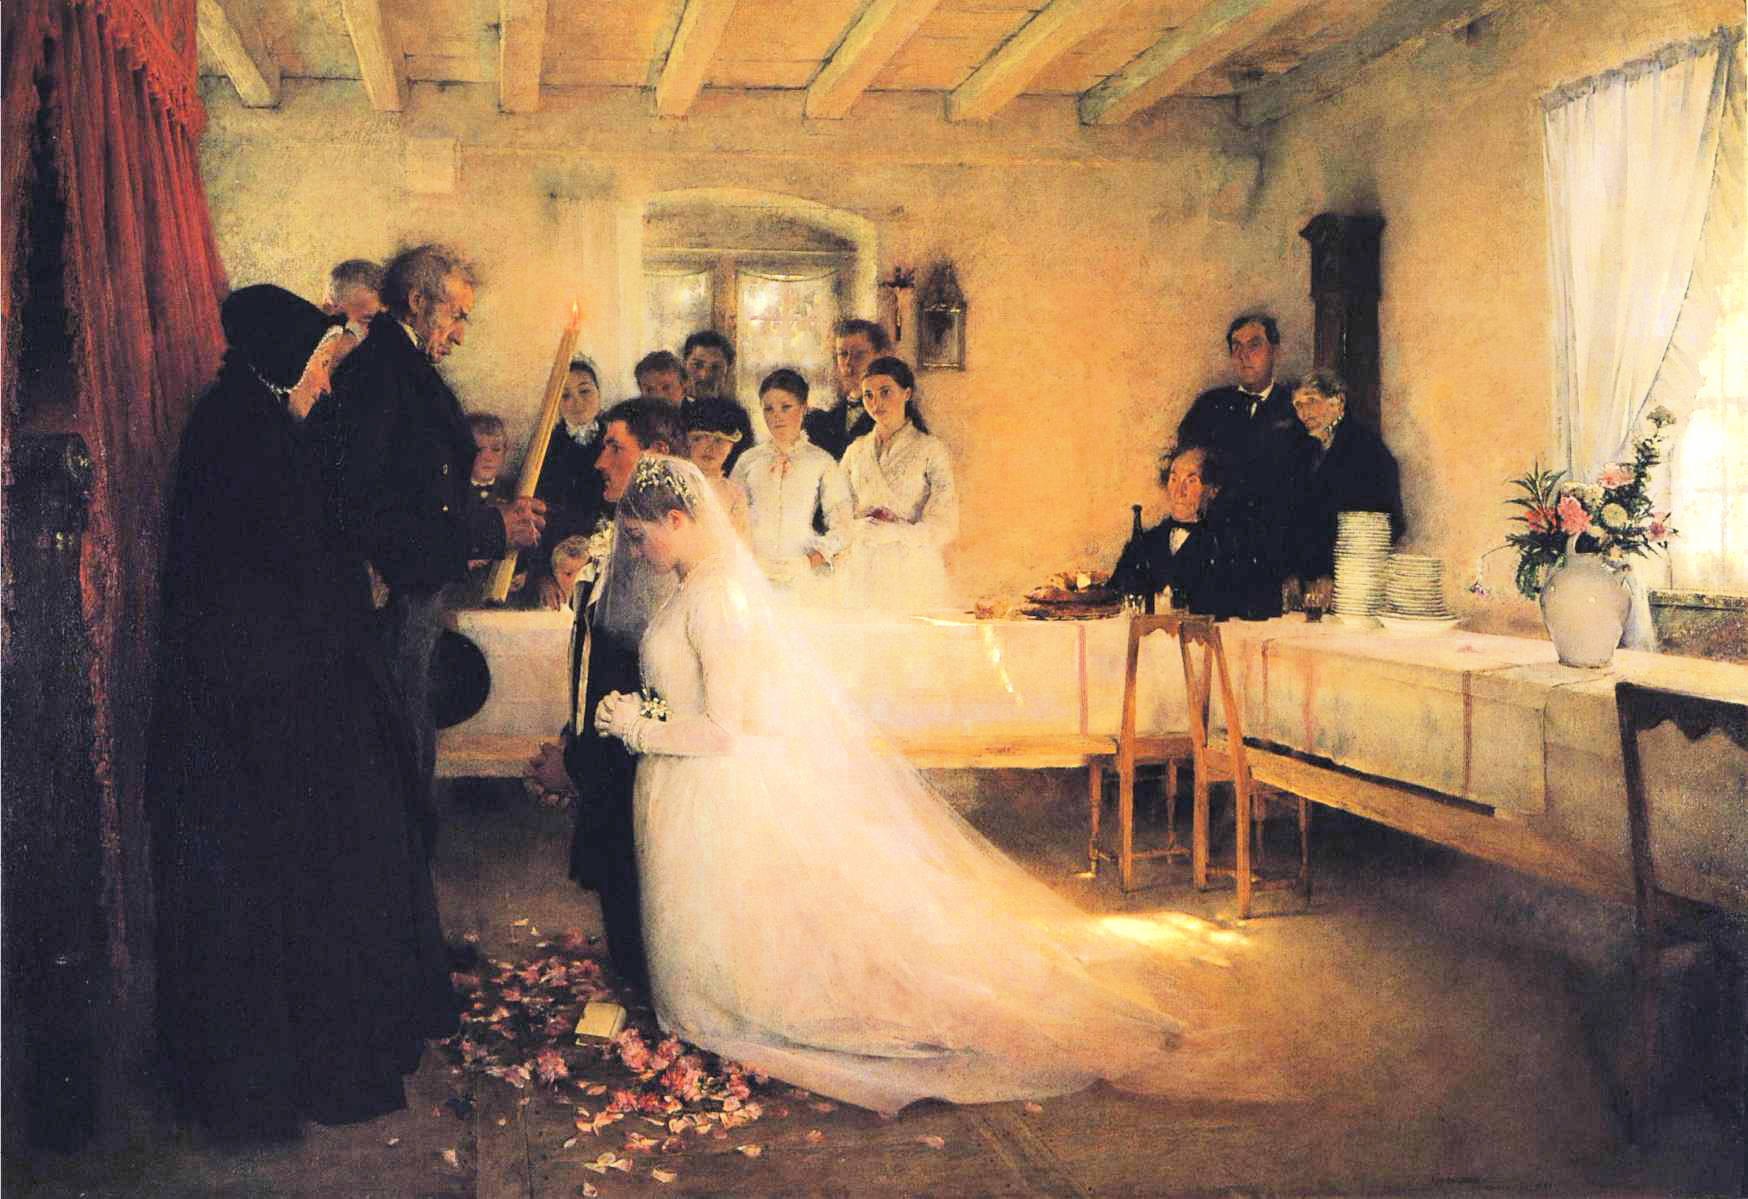 19th century marriage manuals advice for young husbands mimi blessing of the young couple before marriage by pascal dagnan bouveret 1880 81